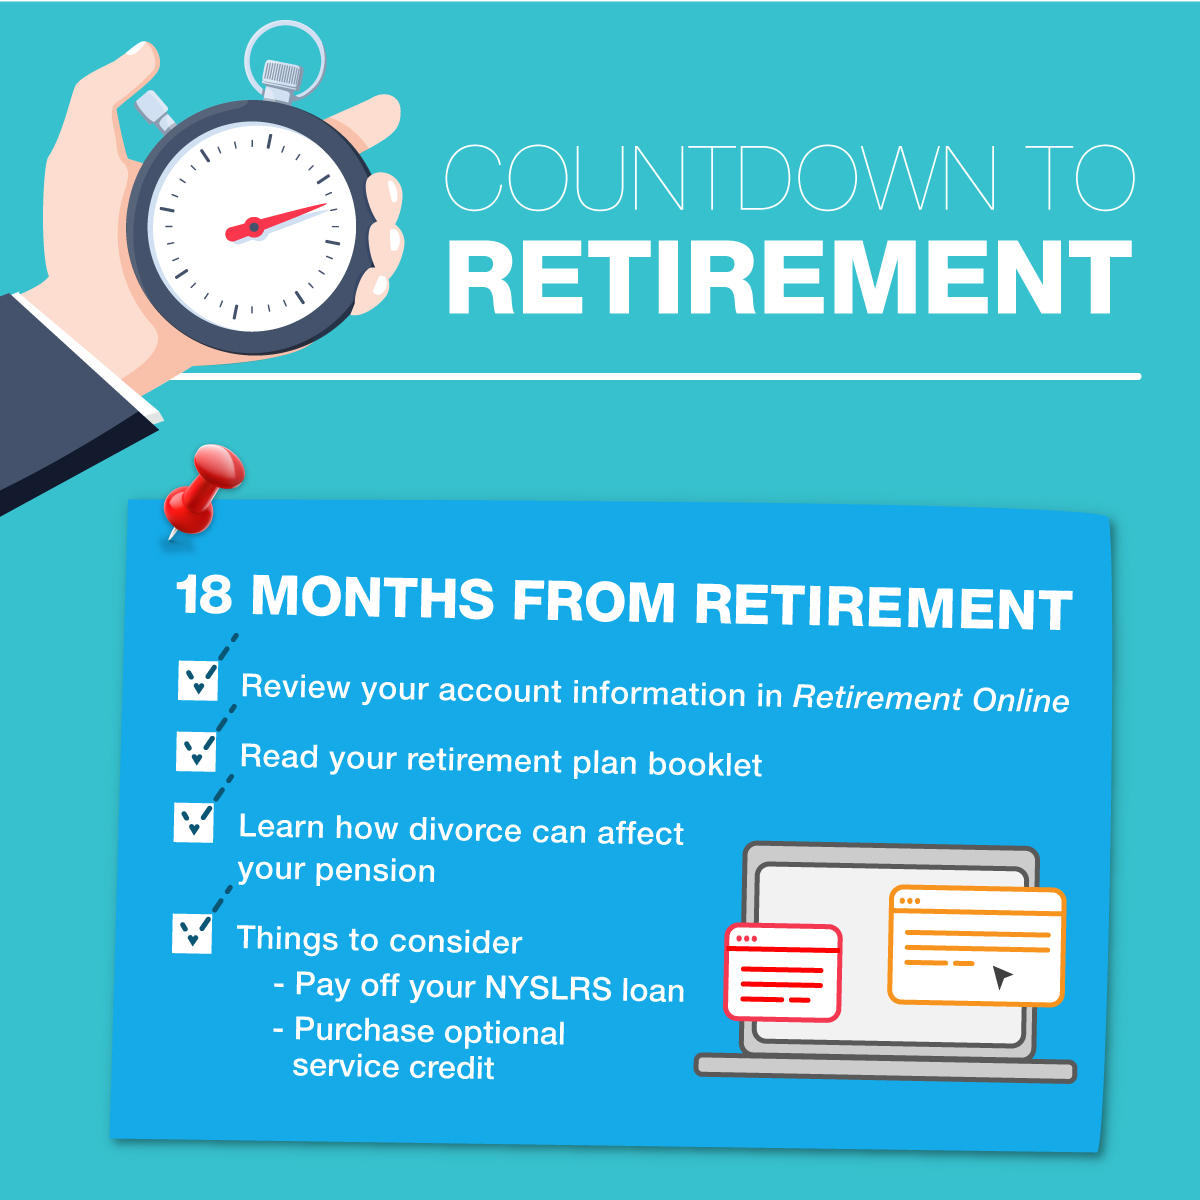 Countdown to Retirement 18 months